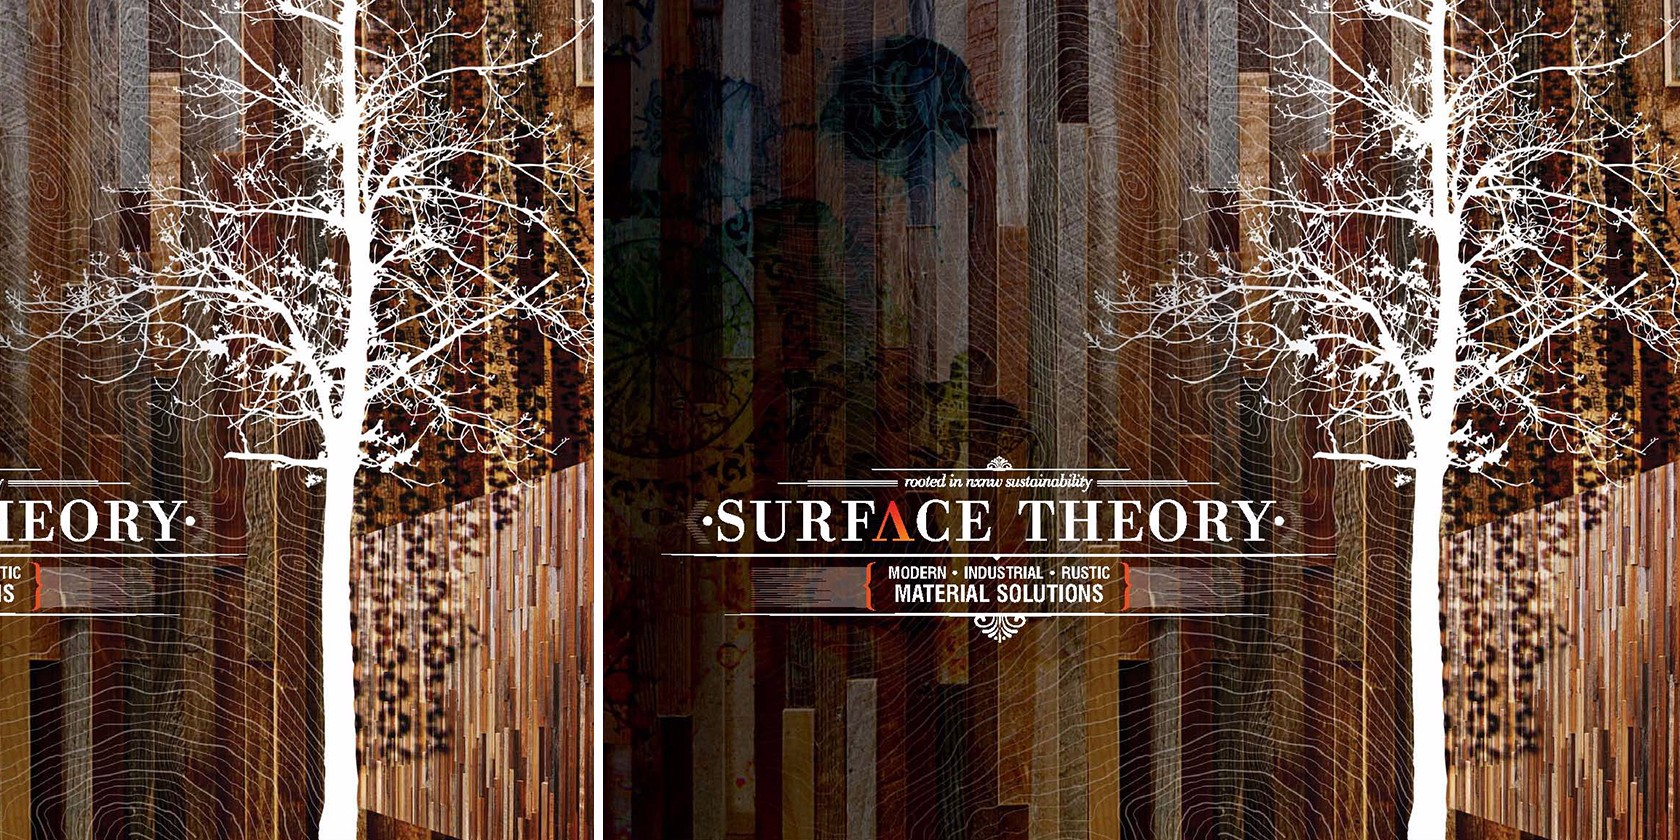 Surface_Theory_Business_Plan_Branding